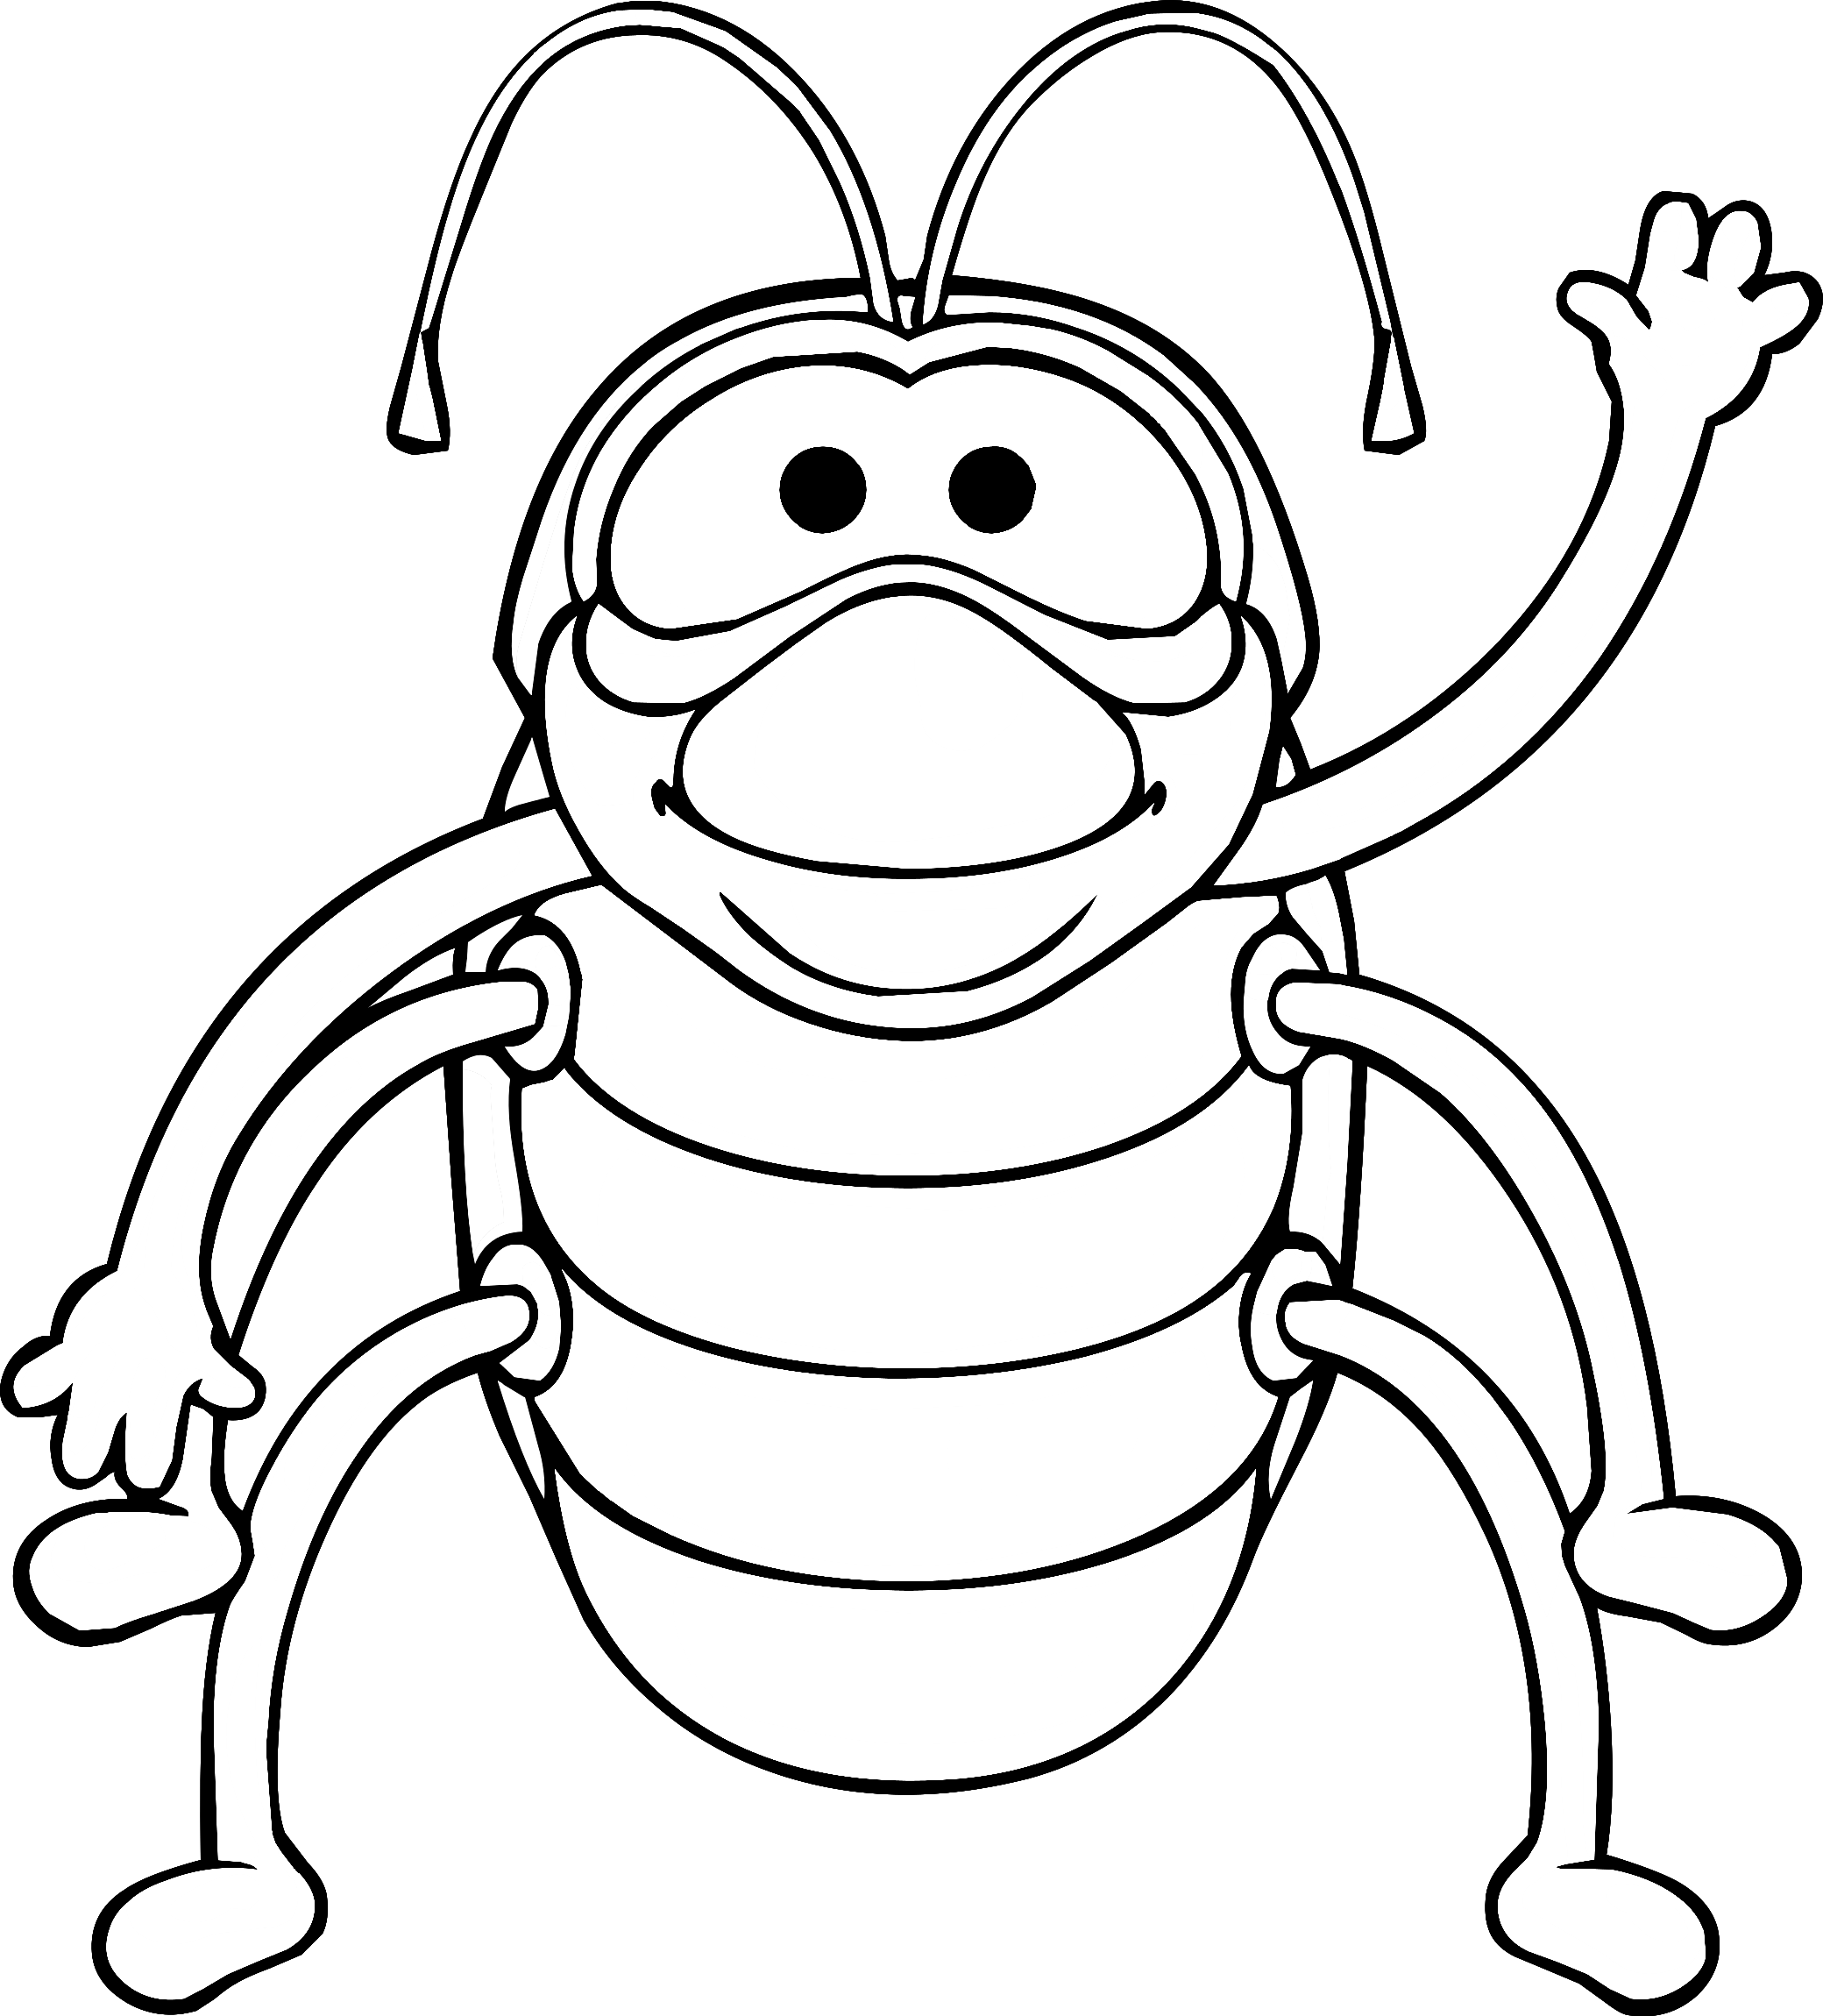 Pill bug coloring page coloring coloring pages for Coloring pages bugs